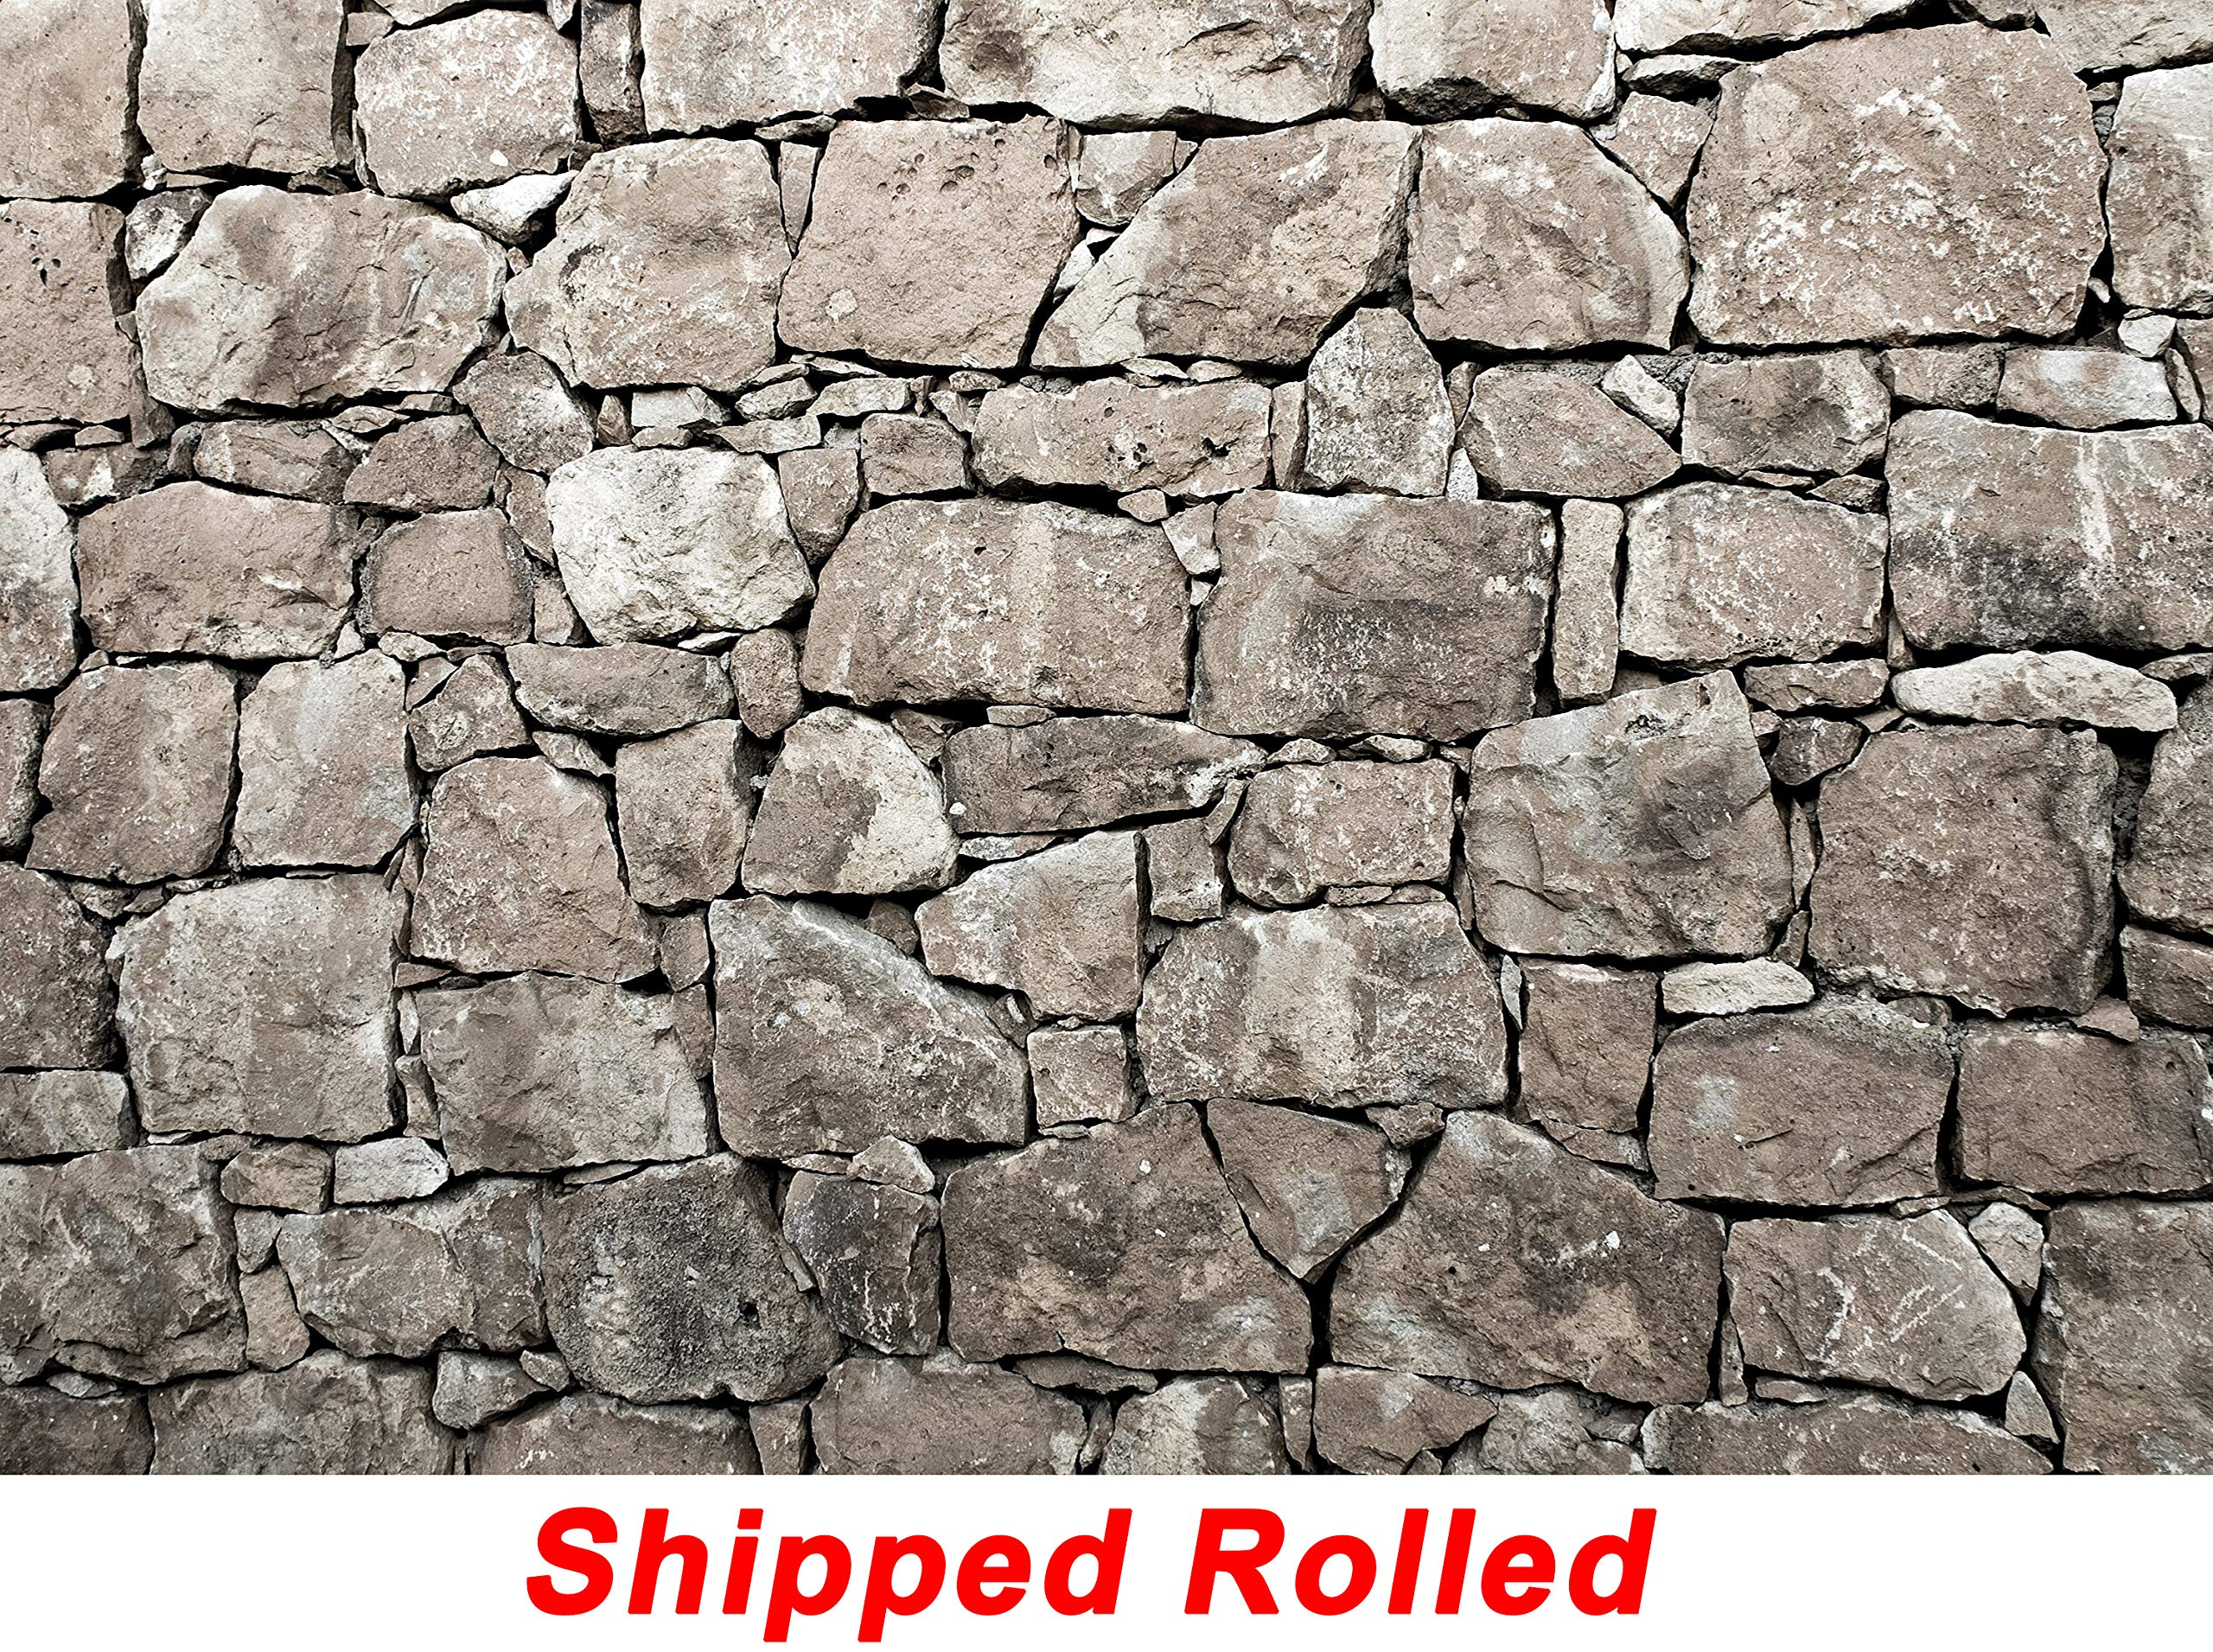 Grunge Grey Rock Wall Backdrop Weathered Old Rustic Stained Gray Stone Church Wall Printed Fabric Photography Background (G1151, 12' Wide by 8' Tall)